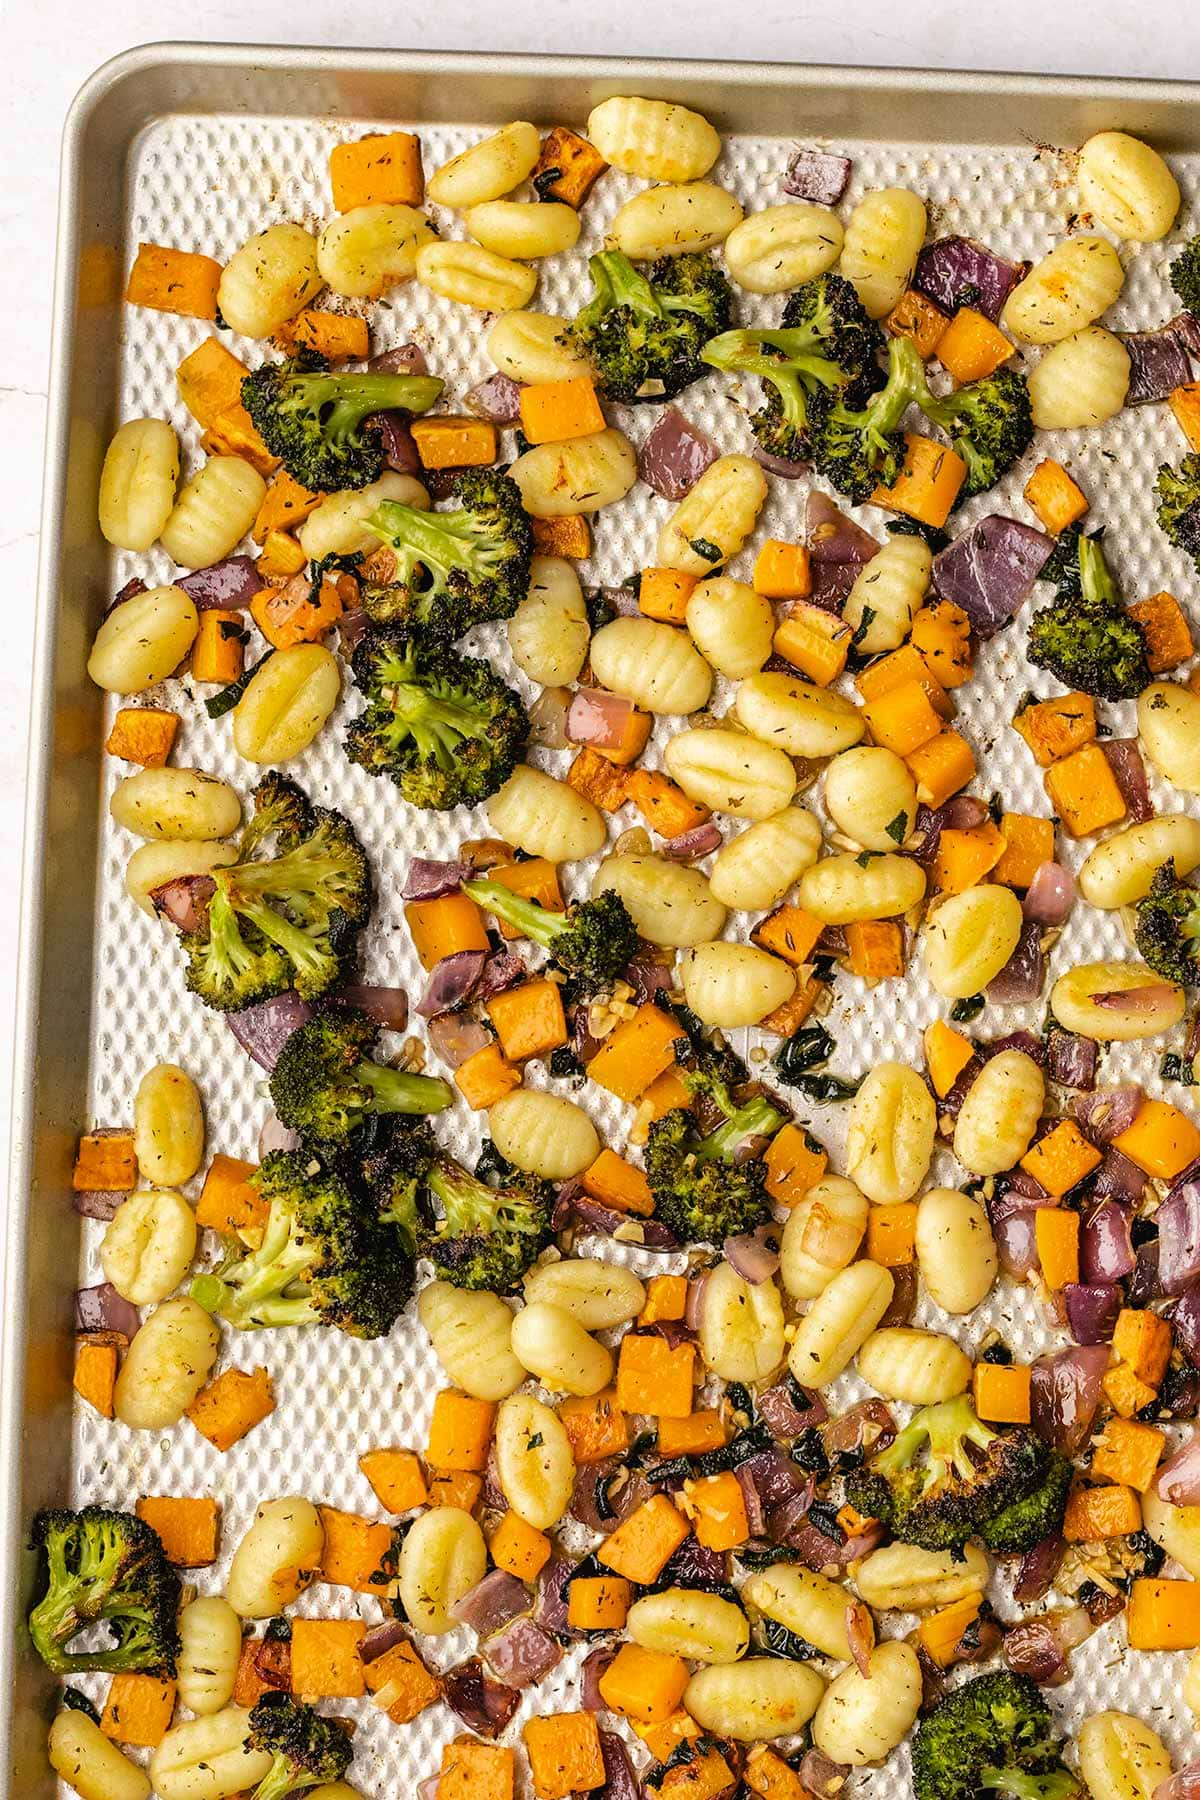 roasted gnocchi, butternut squash, broccoli and red onion on a sheet pan